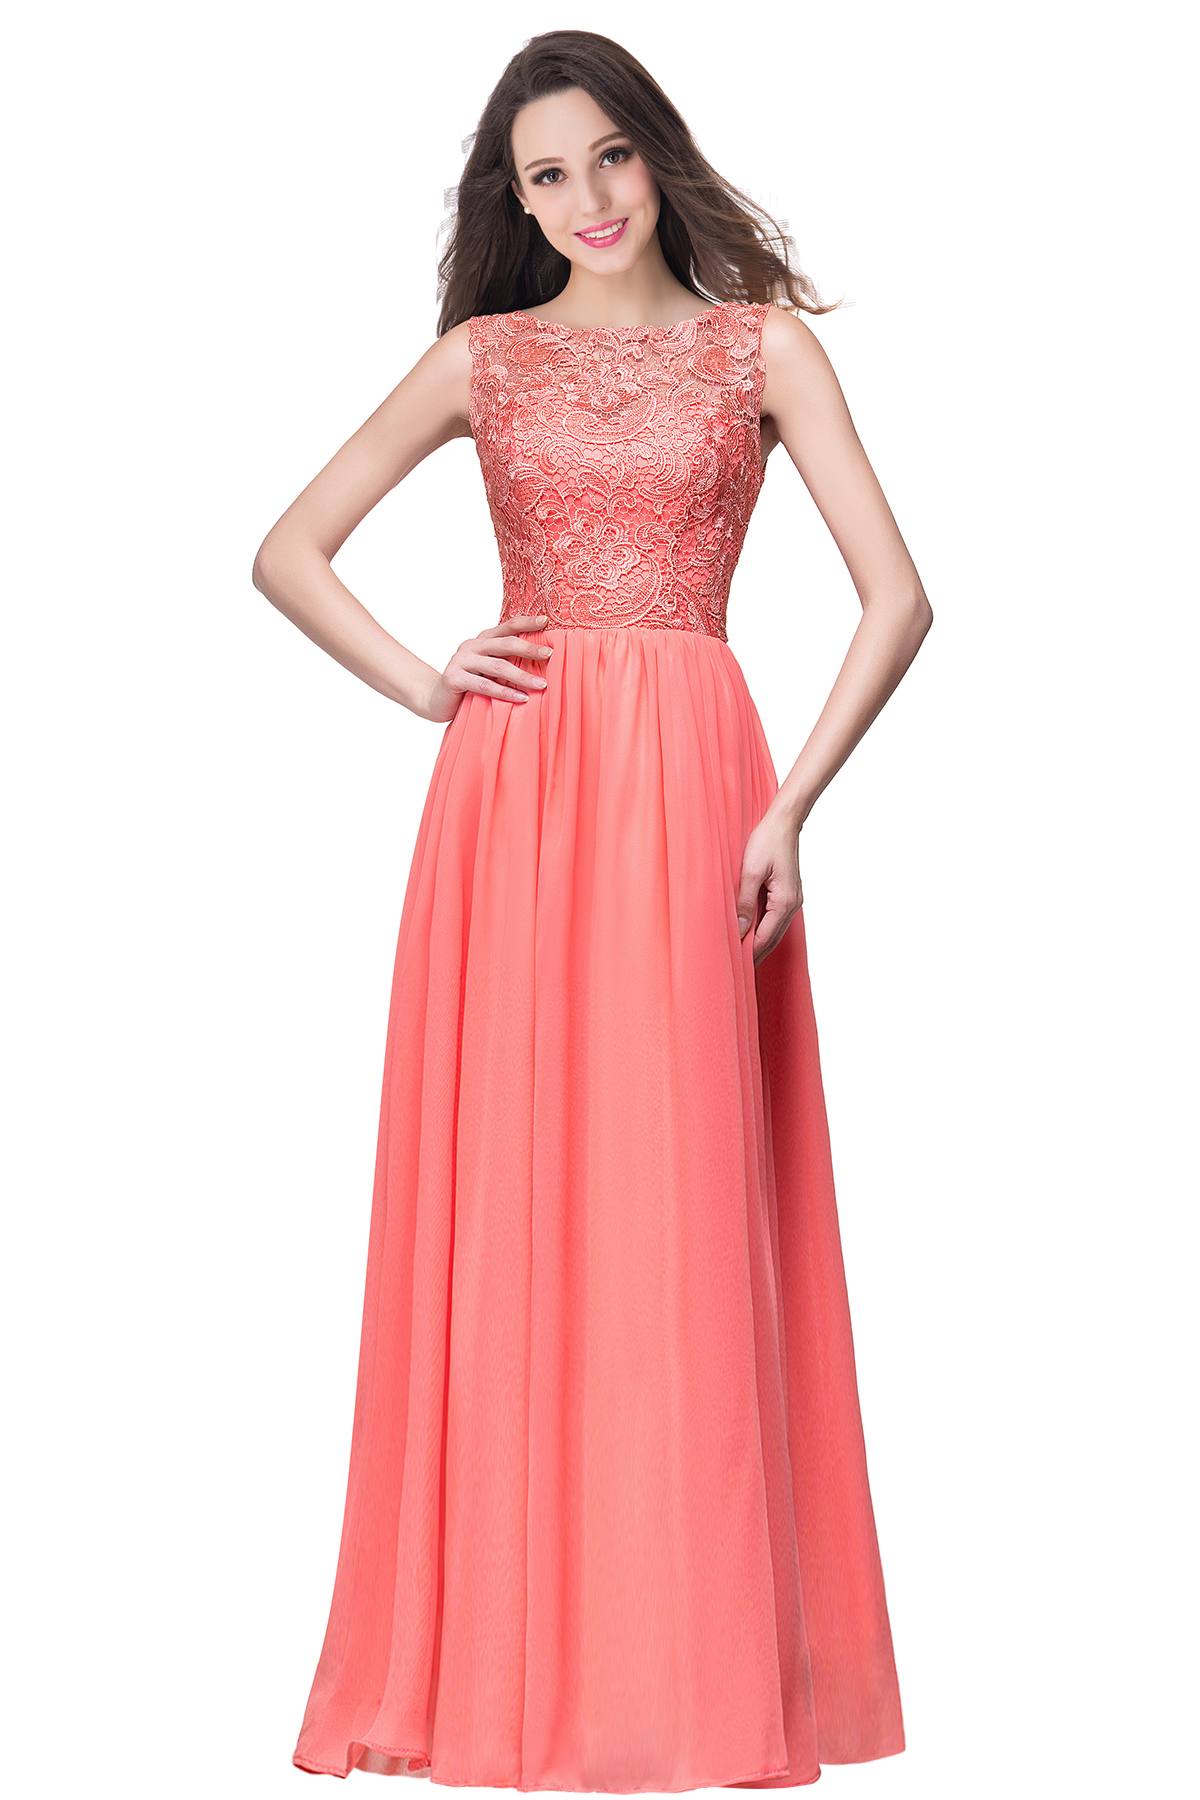 BMbridal Affordable A-line Chiffon Crew Lace Navy Long Bridesmaid Dresses In Stock